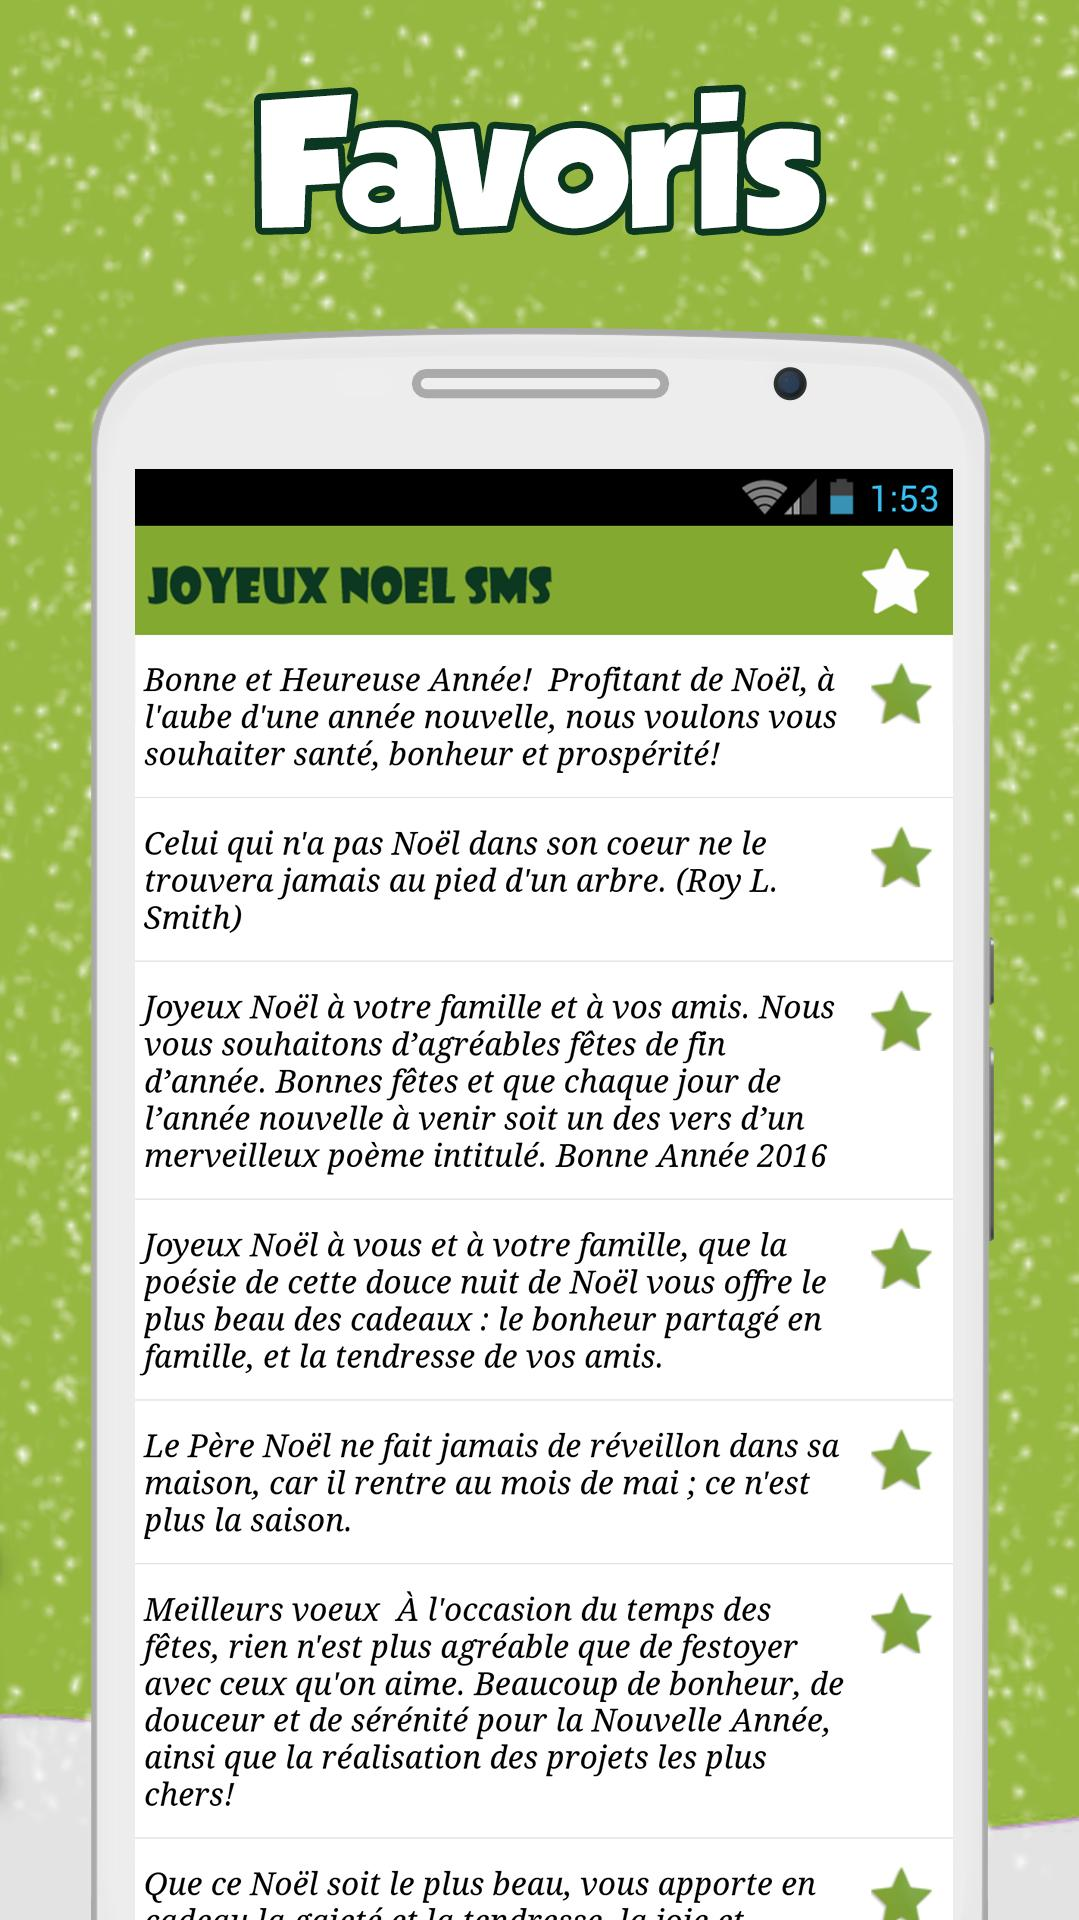 Joyeux Noël Sms For Android Apk Download